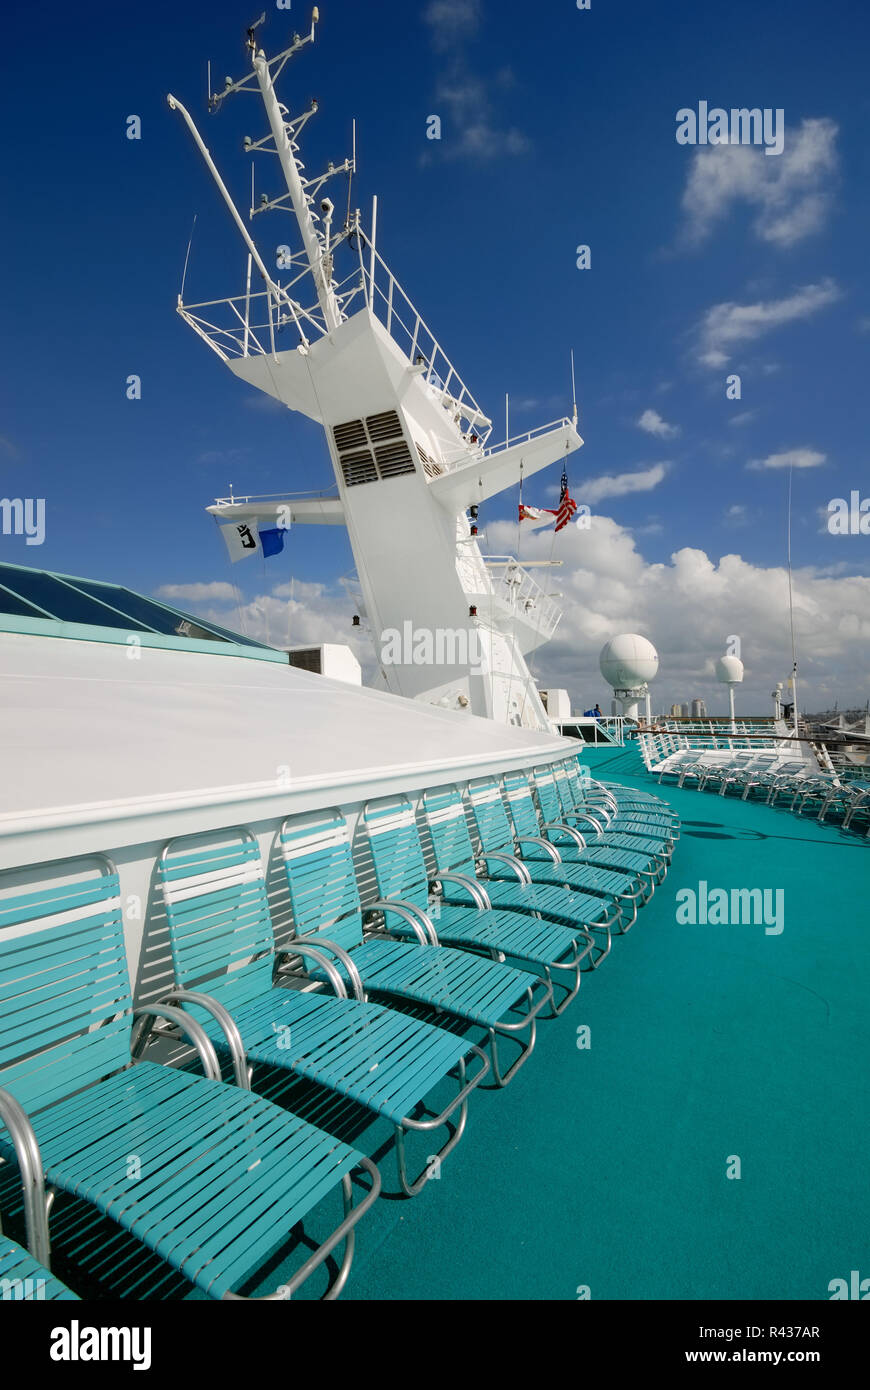 The crow's nest and satellite equipment on the upper deck of Royal Caribbean Interational's Majesty of the Seas cruise ship. - Stock Image